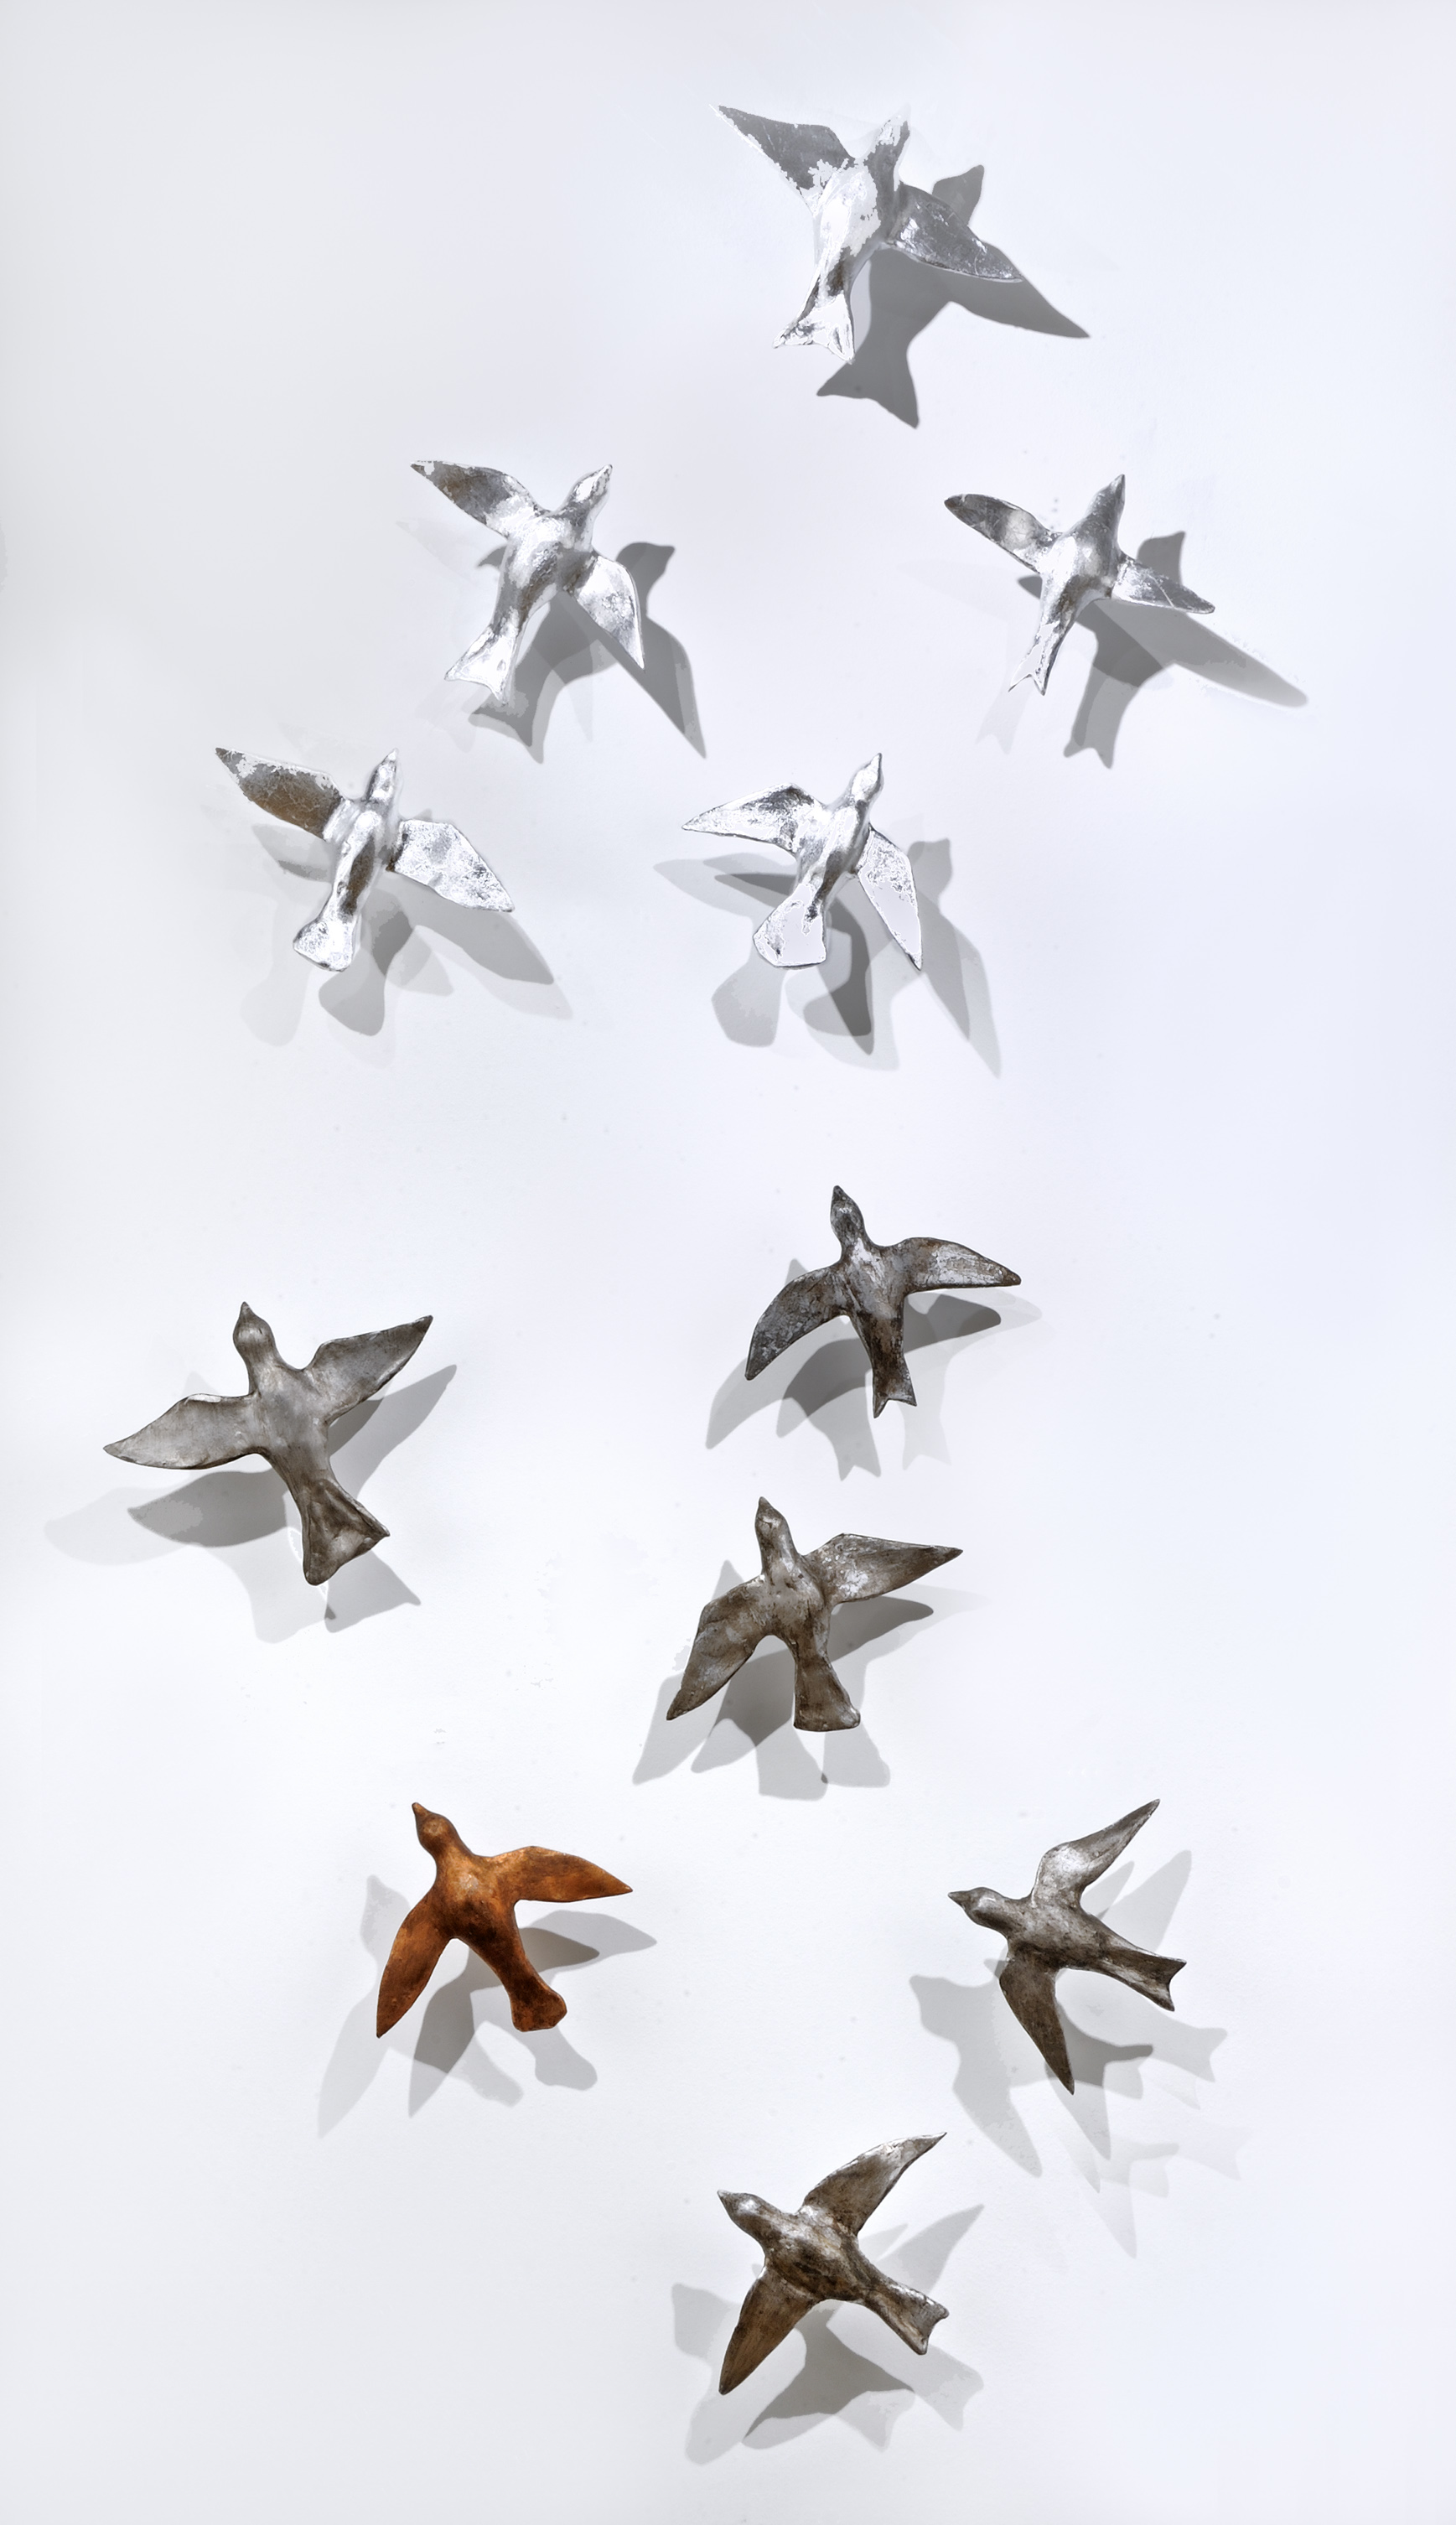 Hostetler_Sunlit Birds_2017_clay with metal leaf_7x3ft_$2,500.jpg